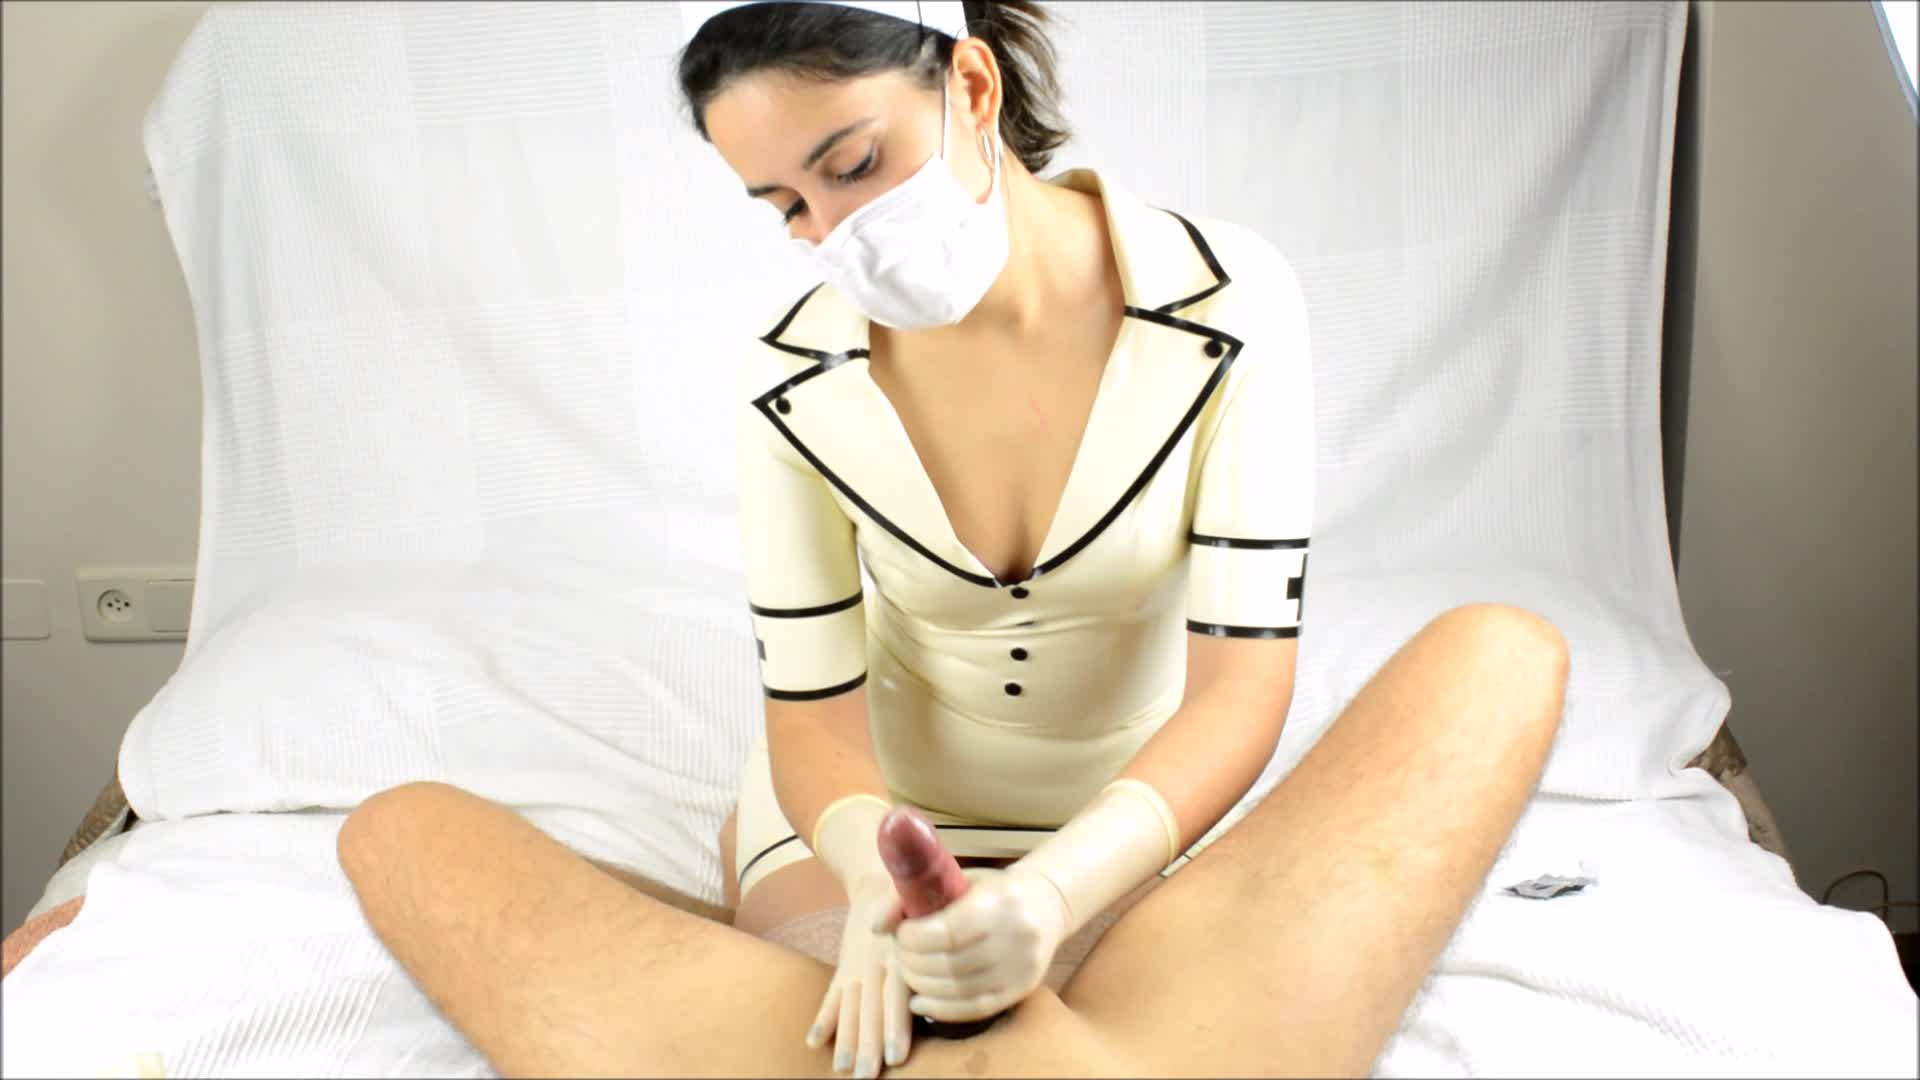 medical-glove-fetish